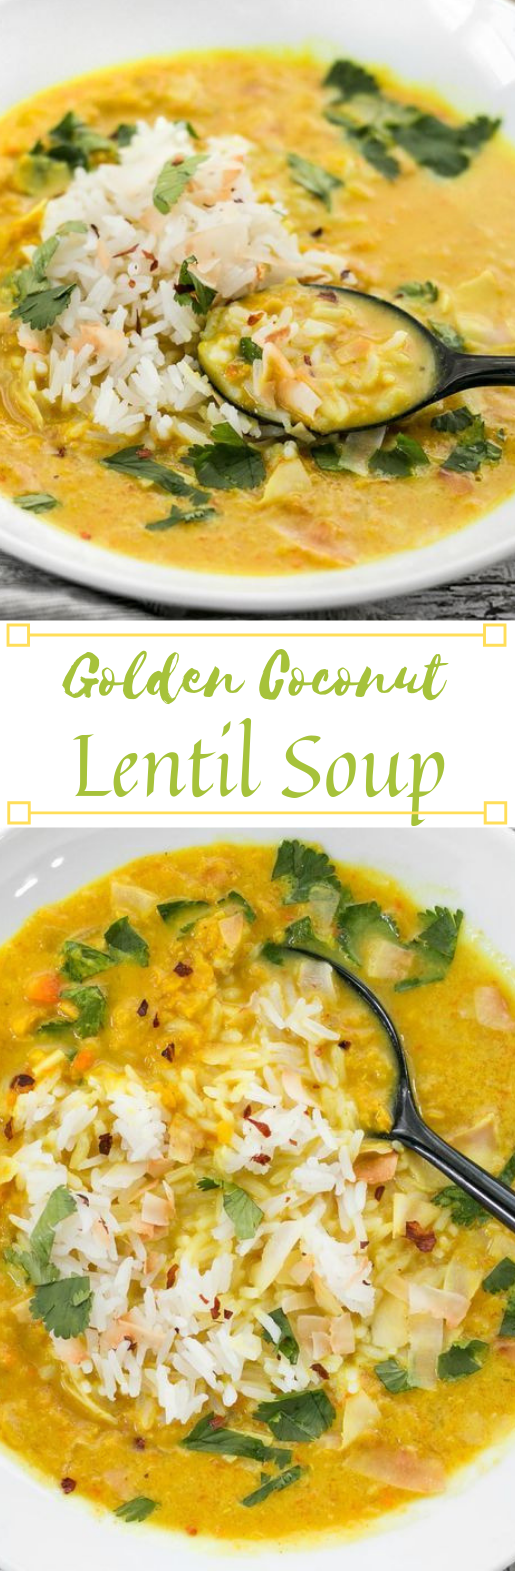 GOLDEN COCONUT LENTIL SOUP #soup #vegetarian #lentil #coconut #breakfast